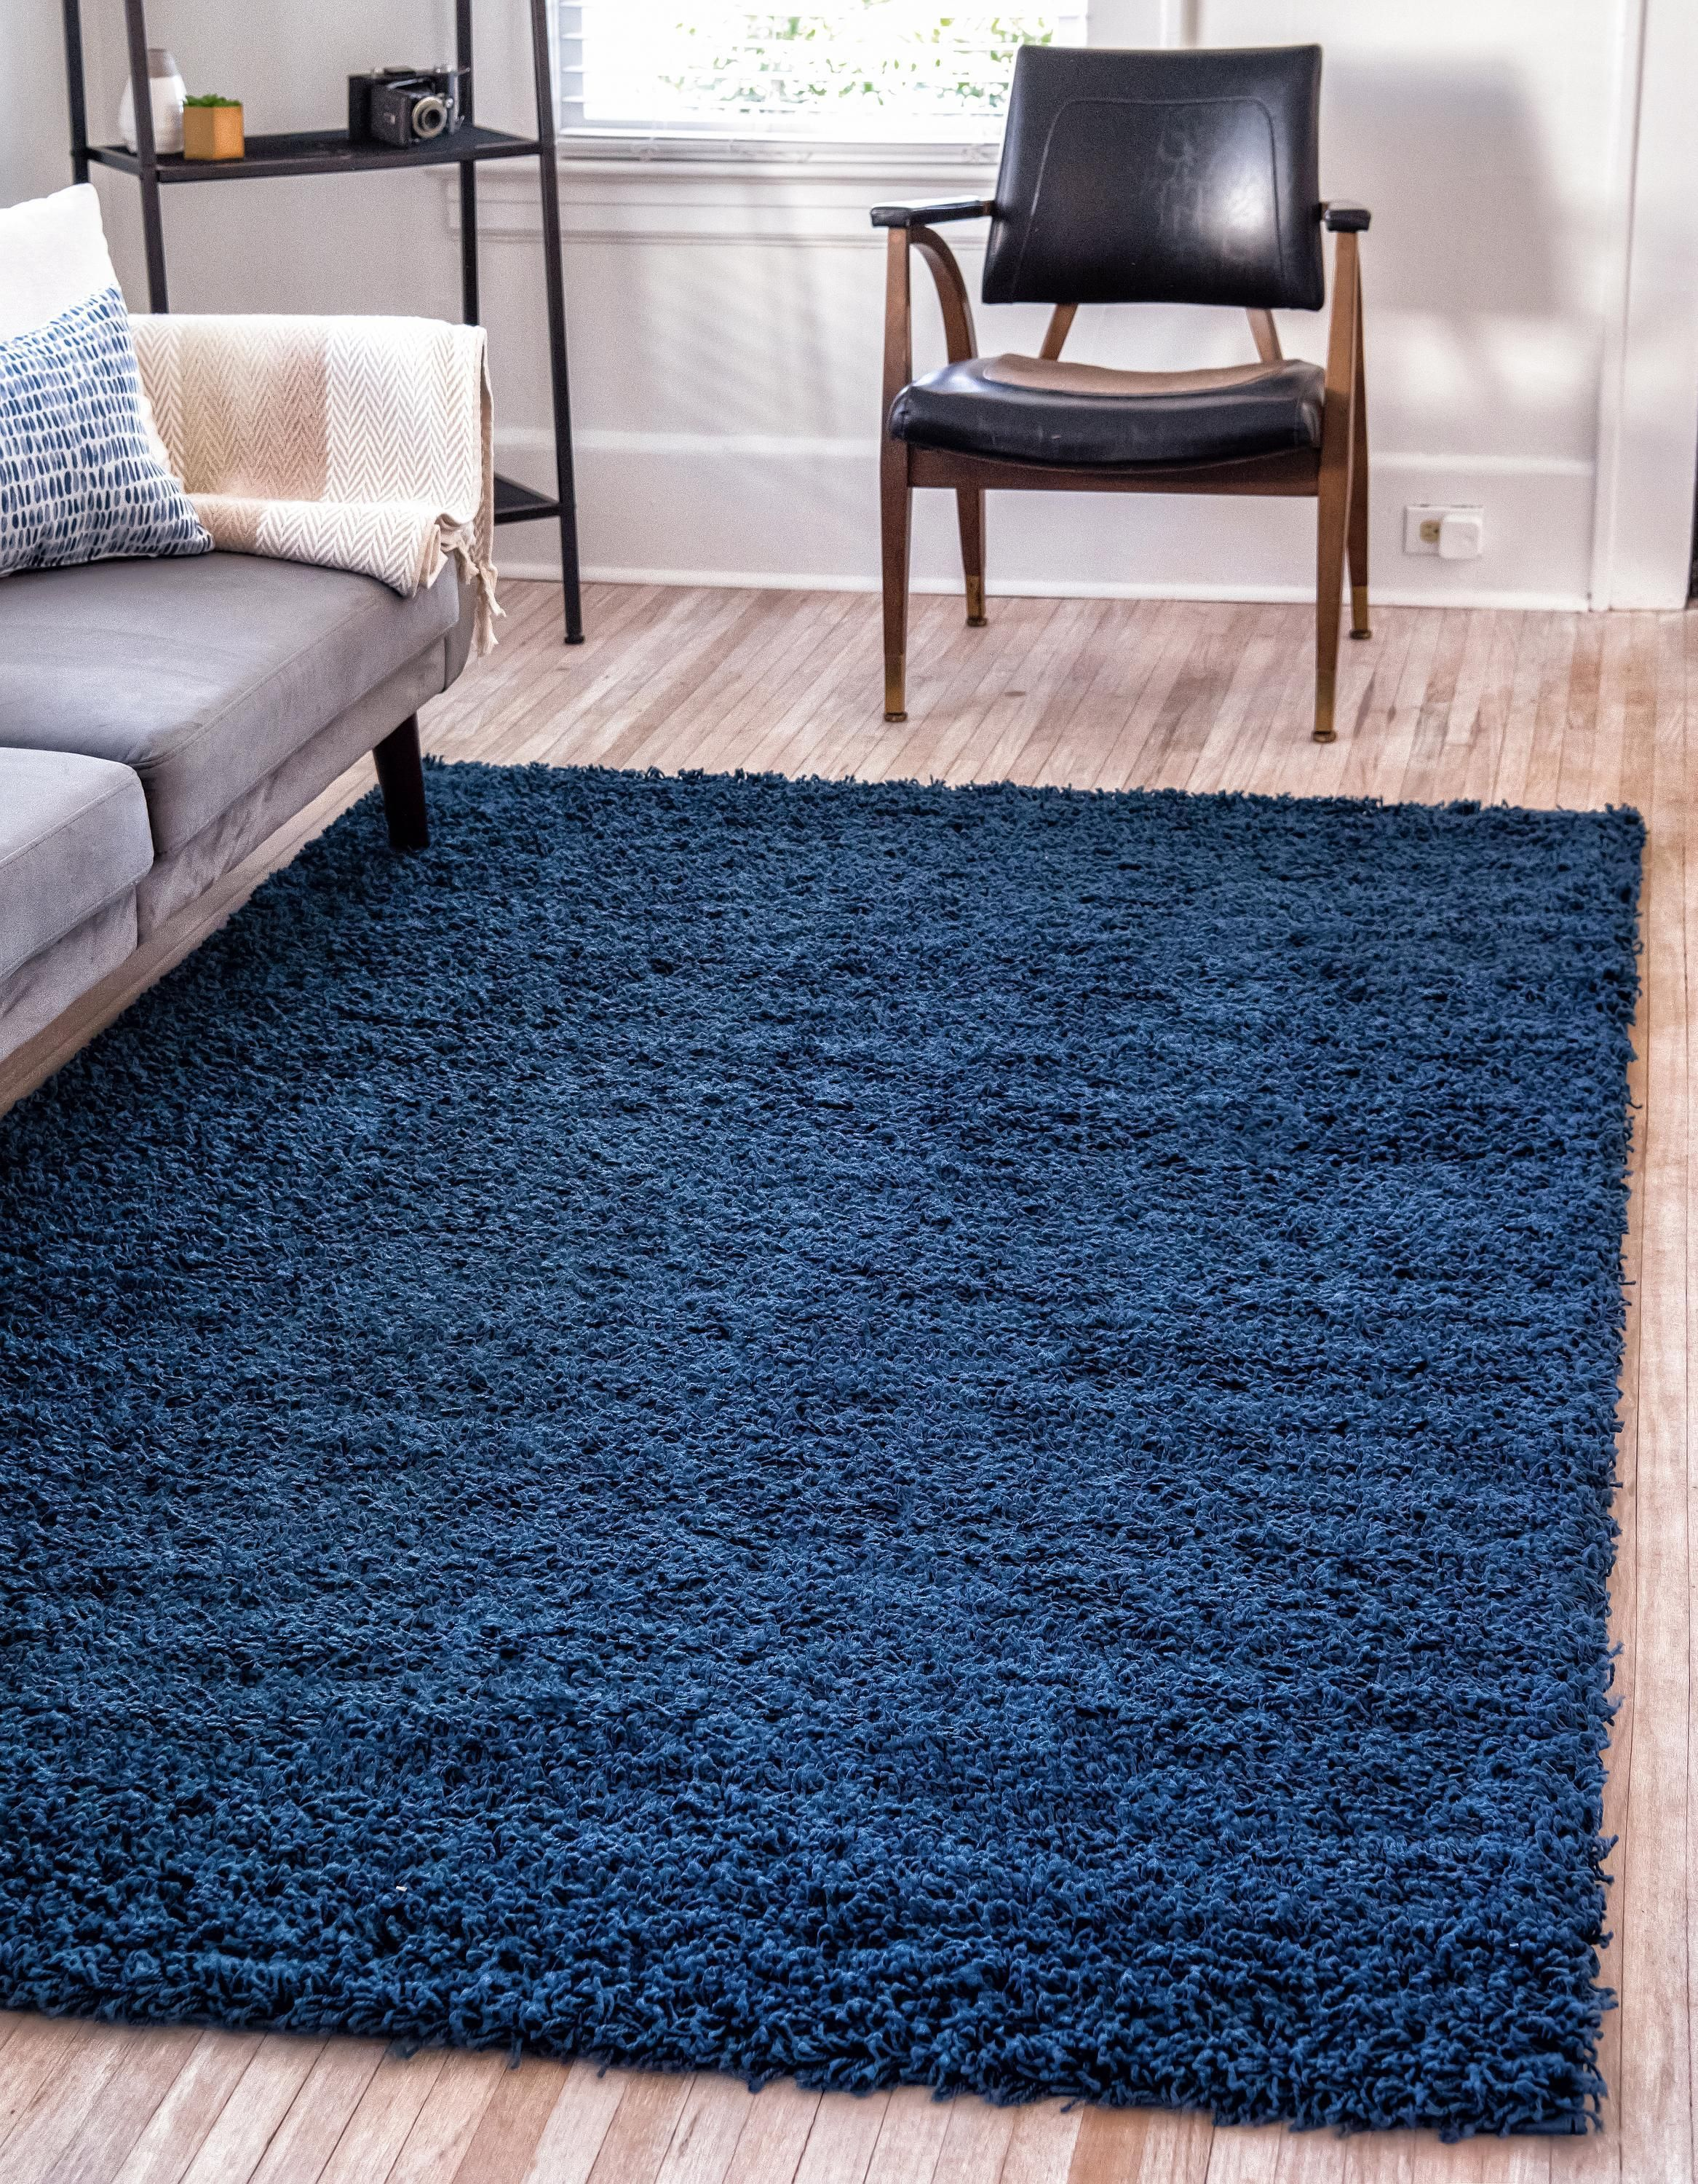 Sapphire Blue 5 X 8 Solid Shag Rug Area Rugs Esalerugs With